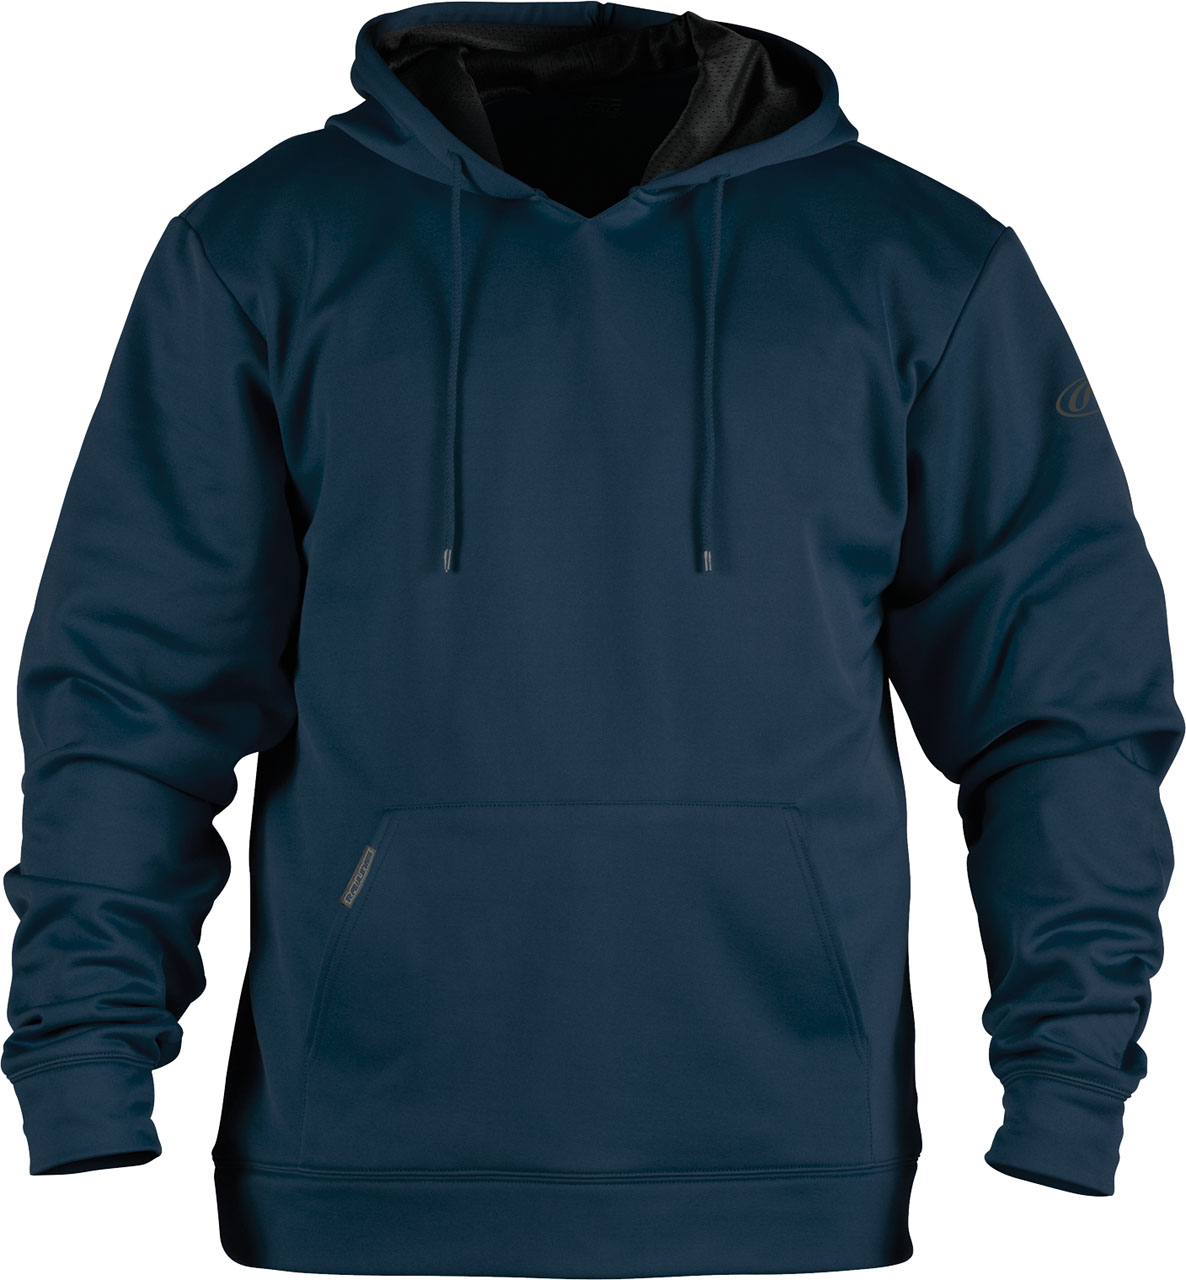 Picture of Rawlings Youth Brushed Performance Fleece Hoodie